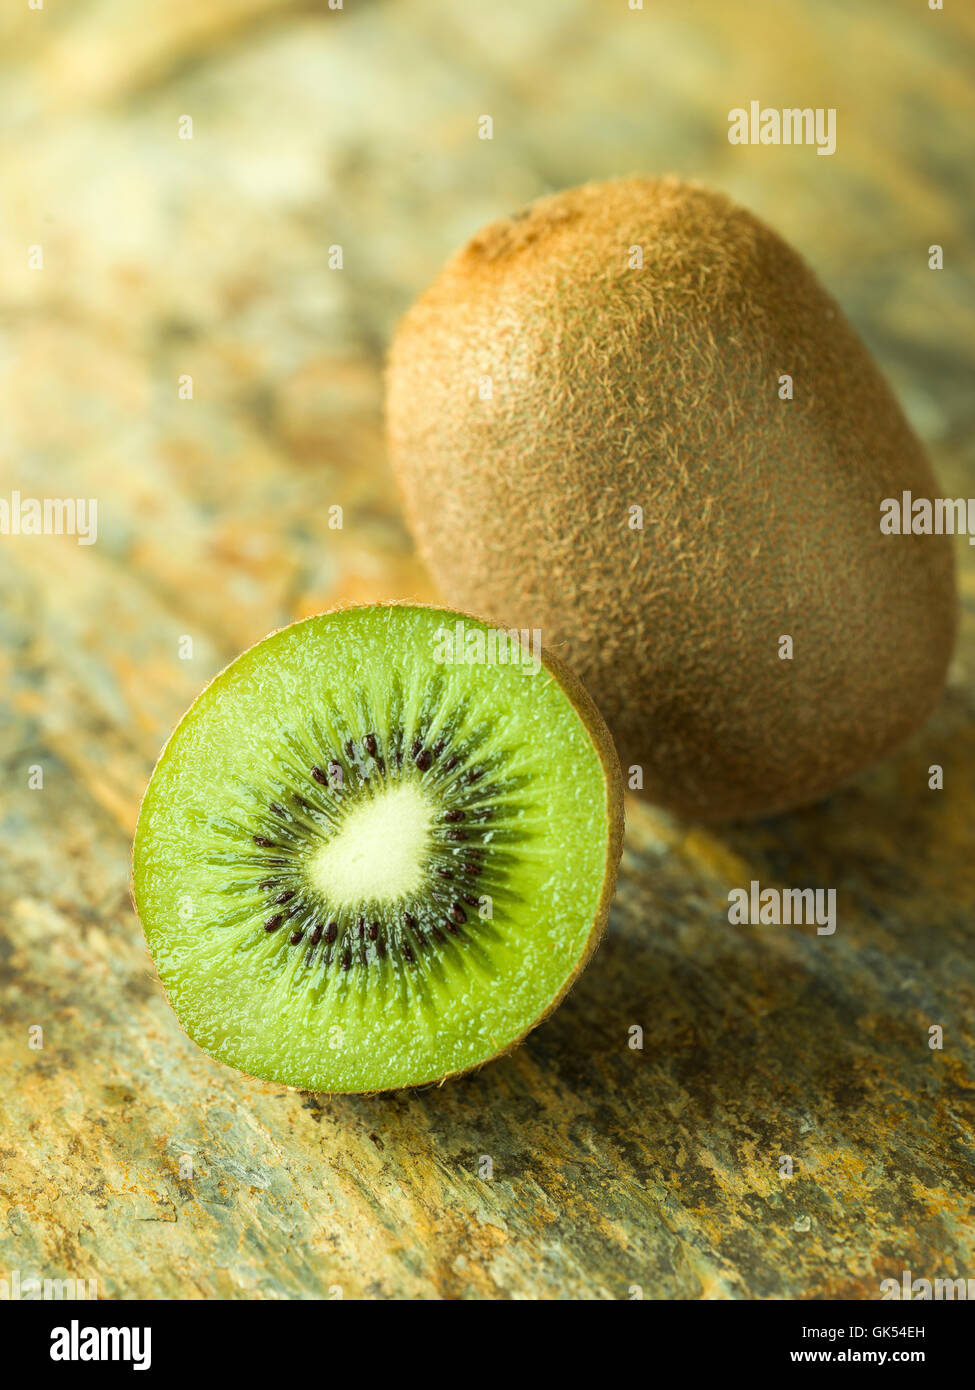 kiwi fruit - Stock Image